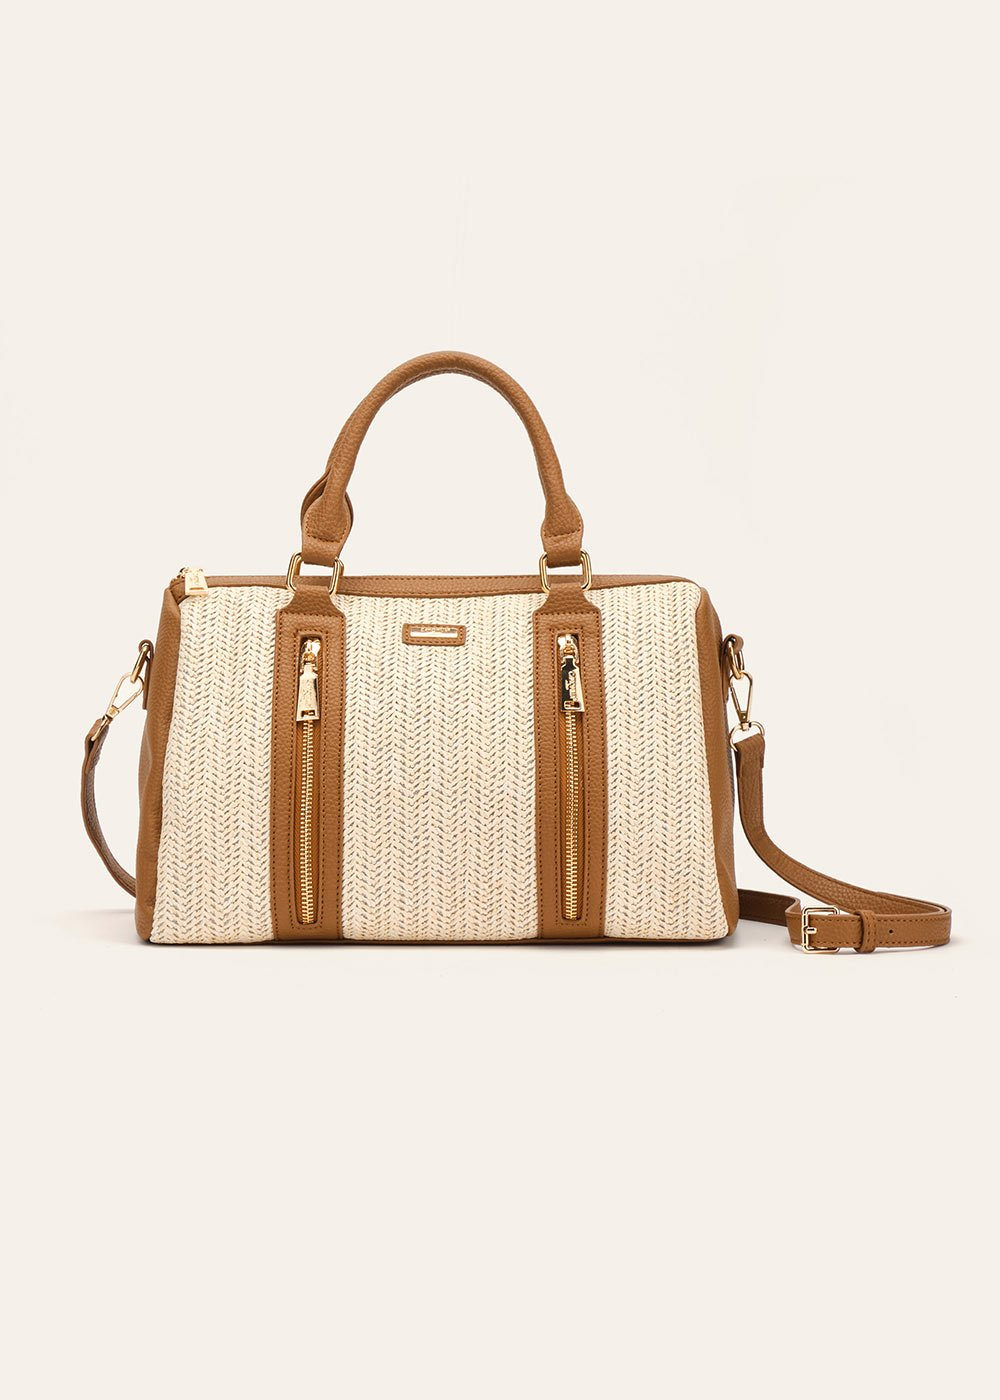 Blondy straw and faux-leather boston bag - Light Beige  / Pecan - Woman